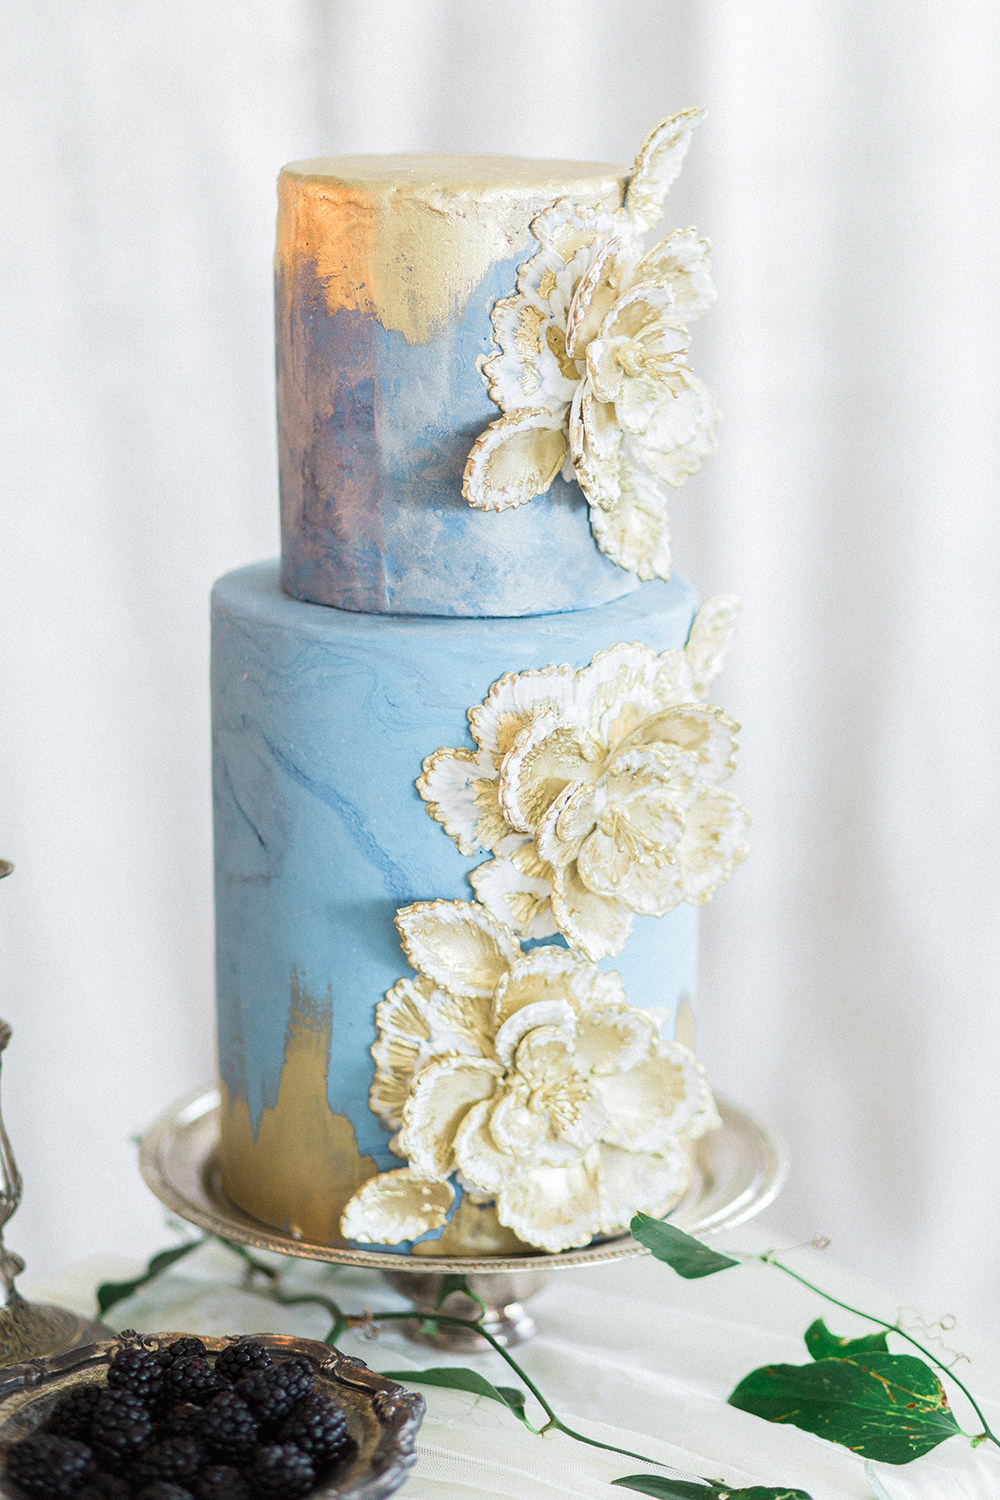 blue and gold wedding cake - photo by Erica J Photography https://ruffledblog.com/old-world-wedding-editorial-at-vizcaya-museum